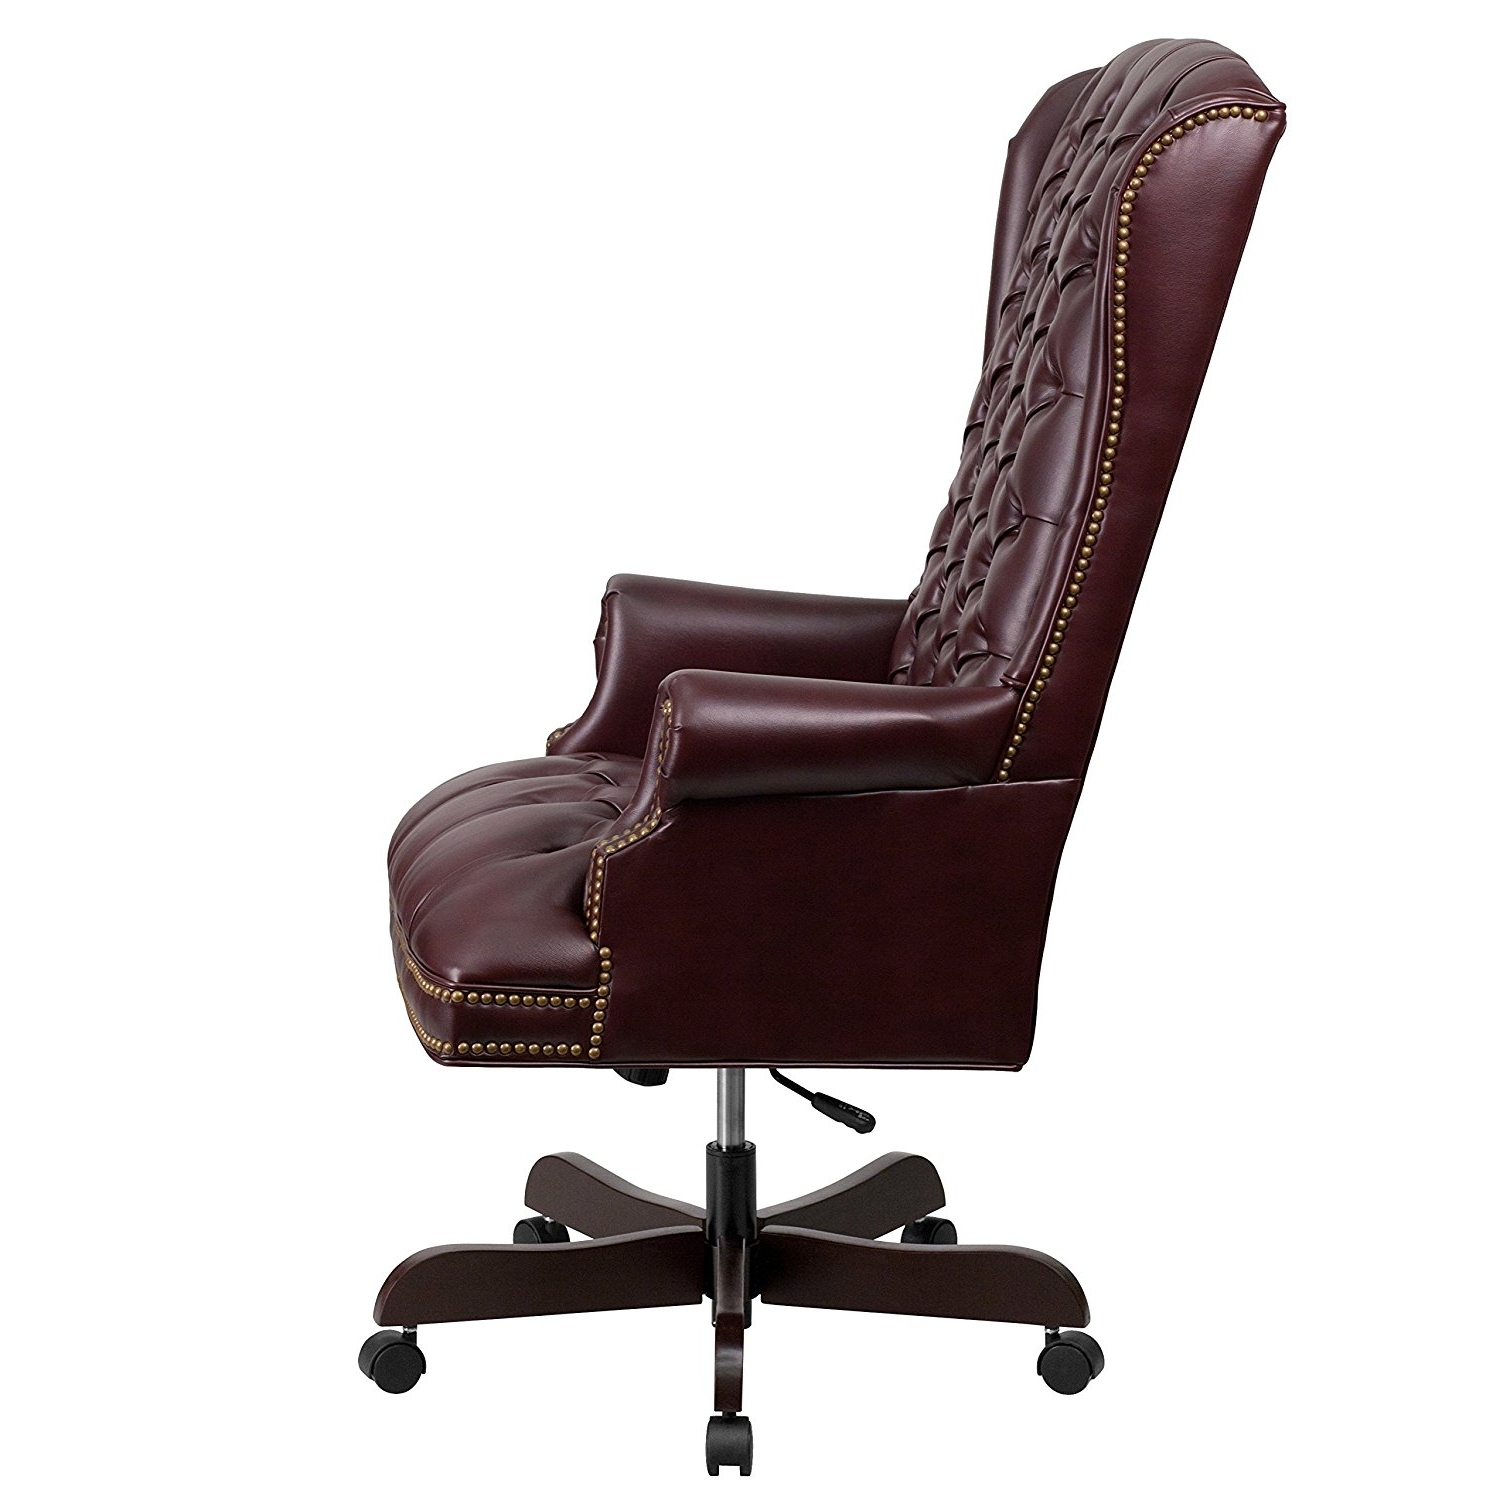 Chair : High Back Executive Leather Office Chair Lumbar Support With Regard To Well Known Executive Office Chairs With Back Support (View 5 of 20)